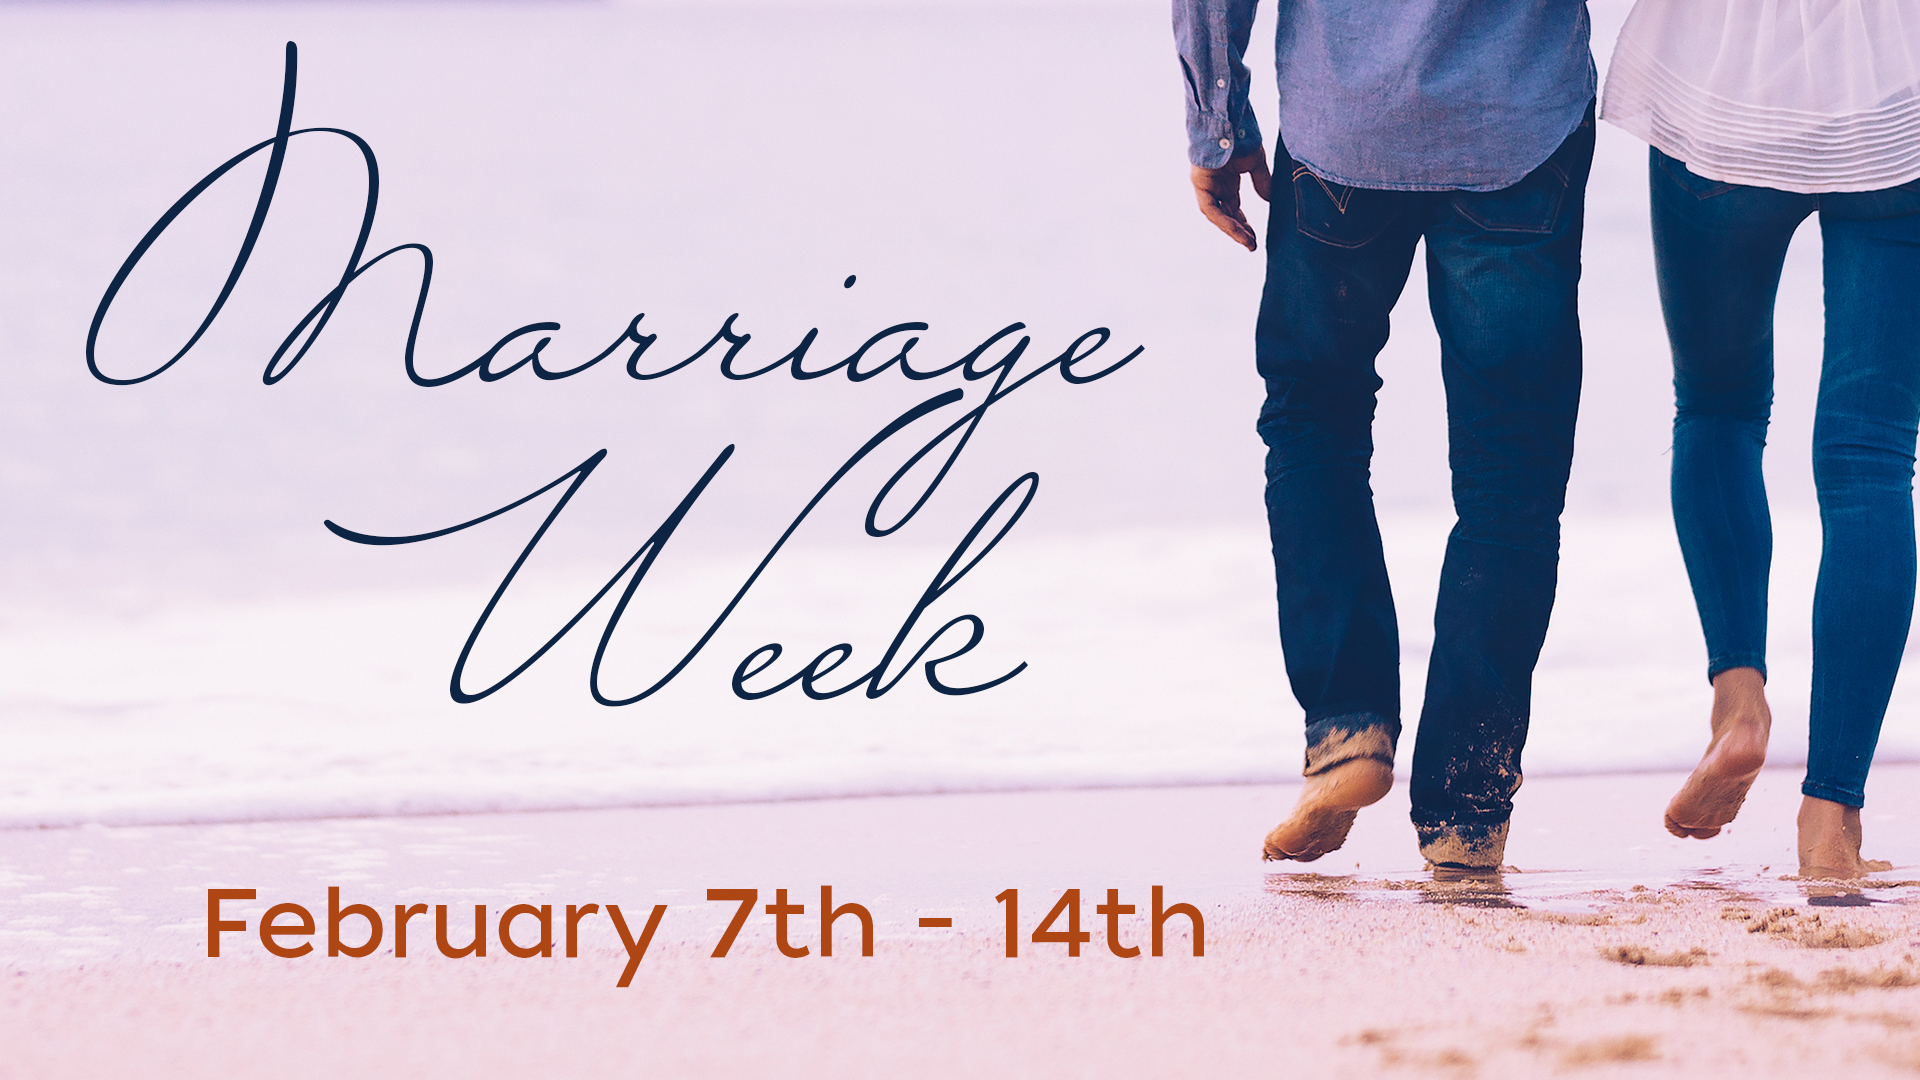 marriageweek image